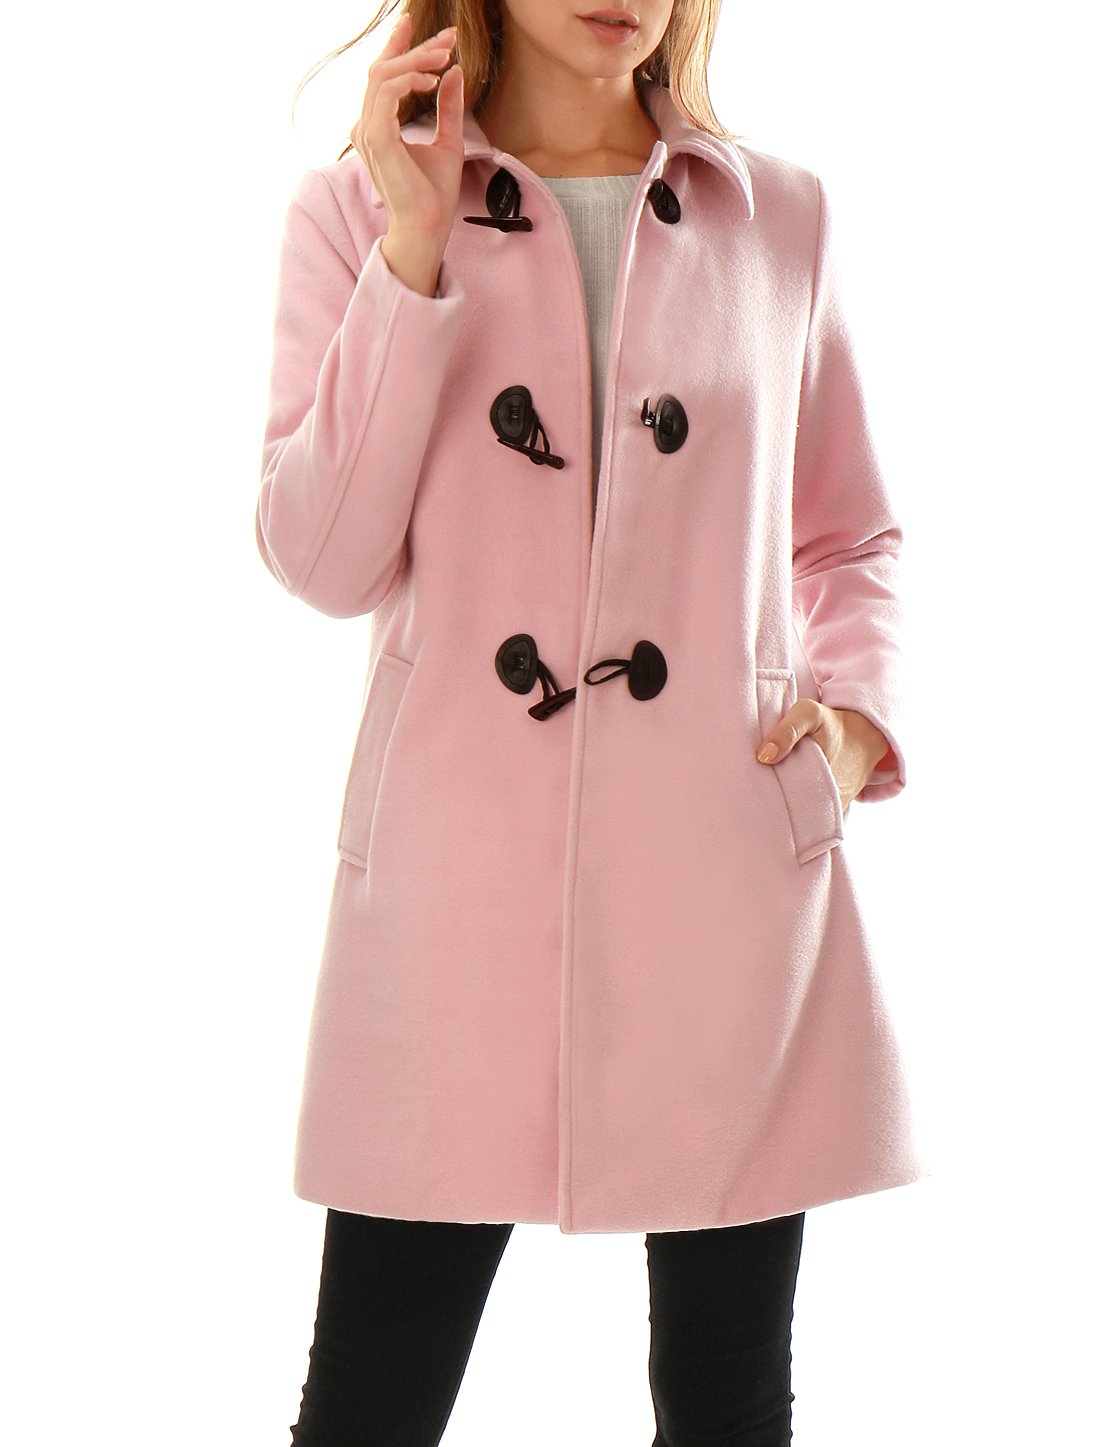 Women Turn Down Collar Slant Pockets Worsted Longline Toggle Coat Pink S